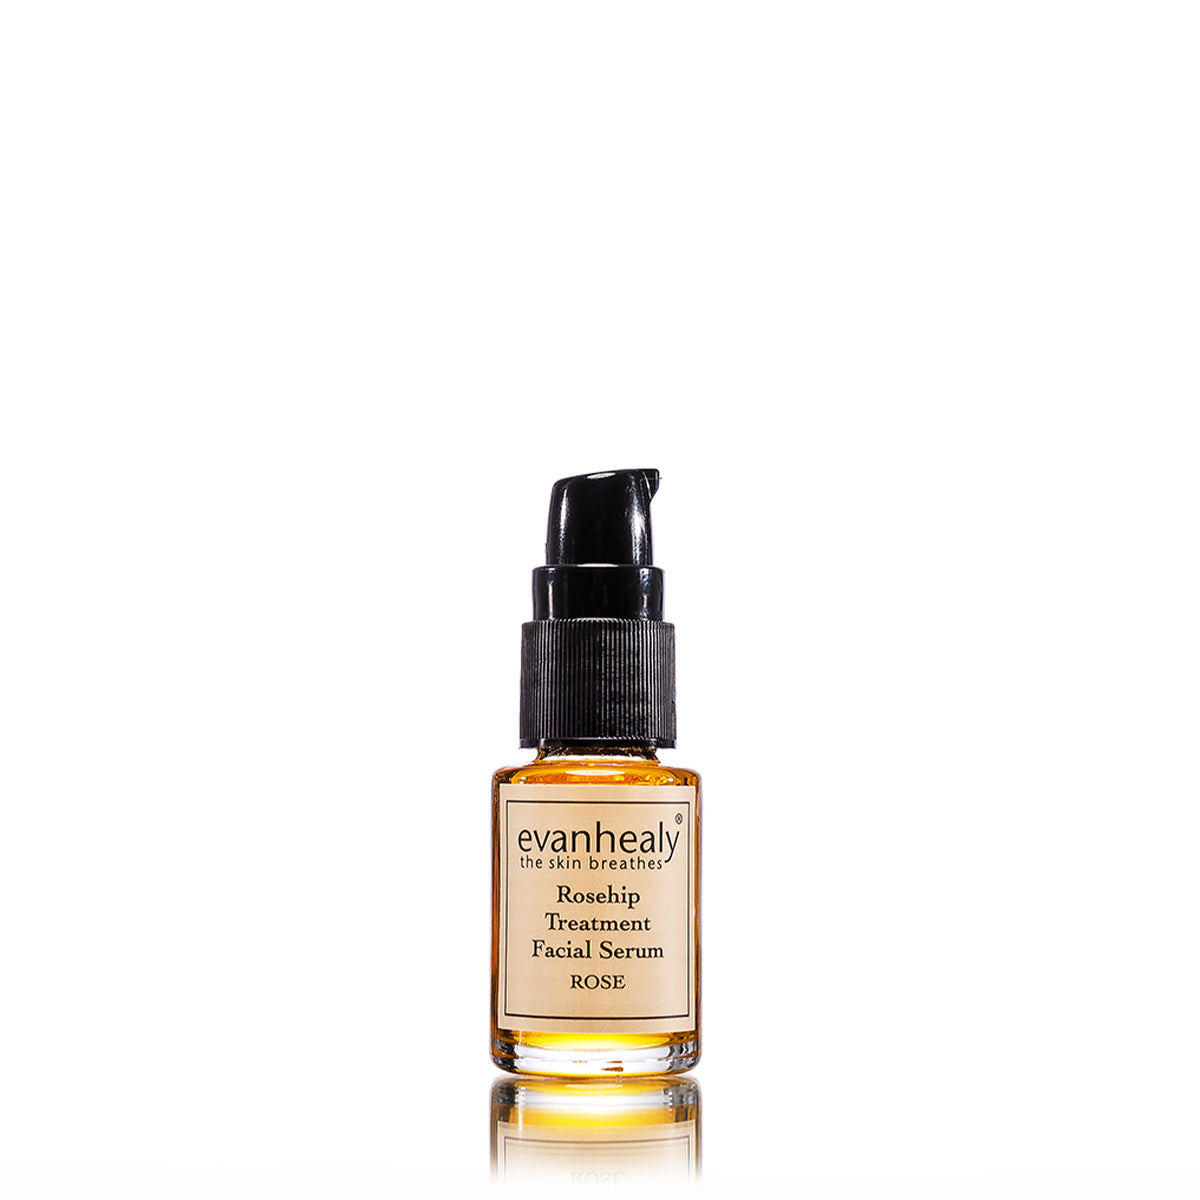 Rosehip Treatment Facial Serum - Rose